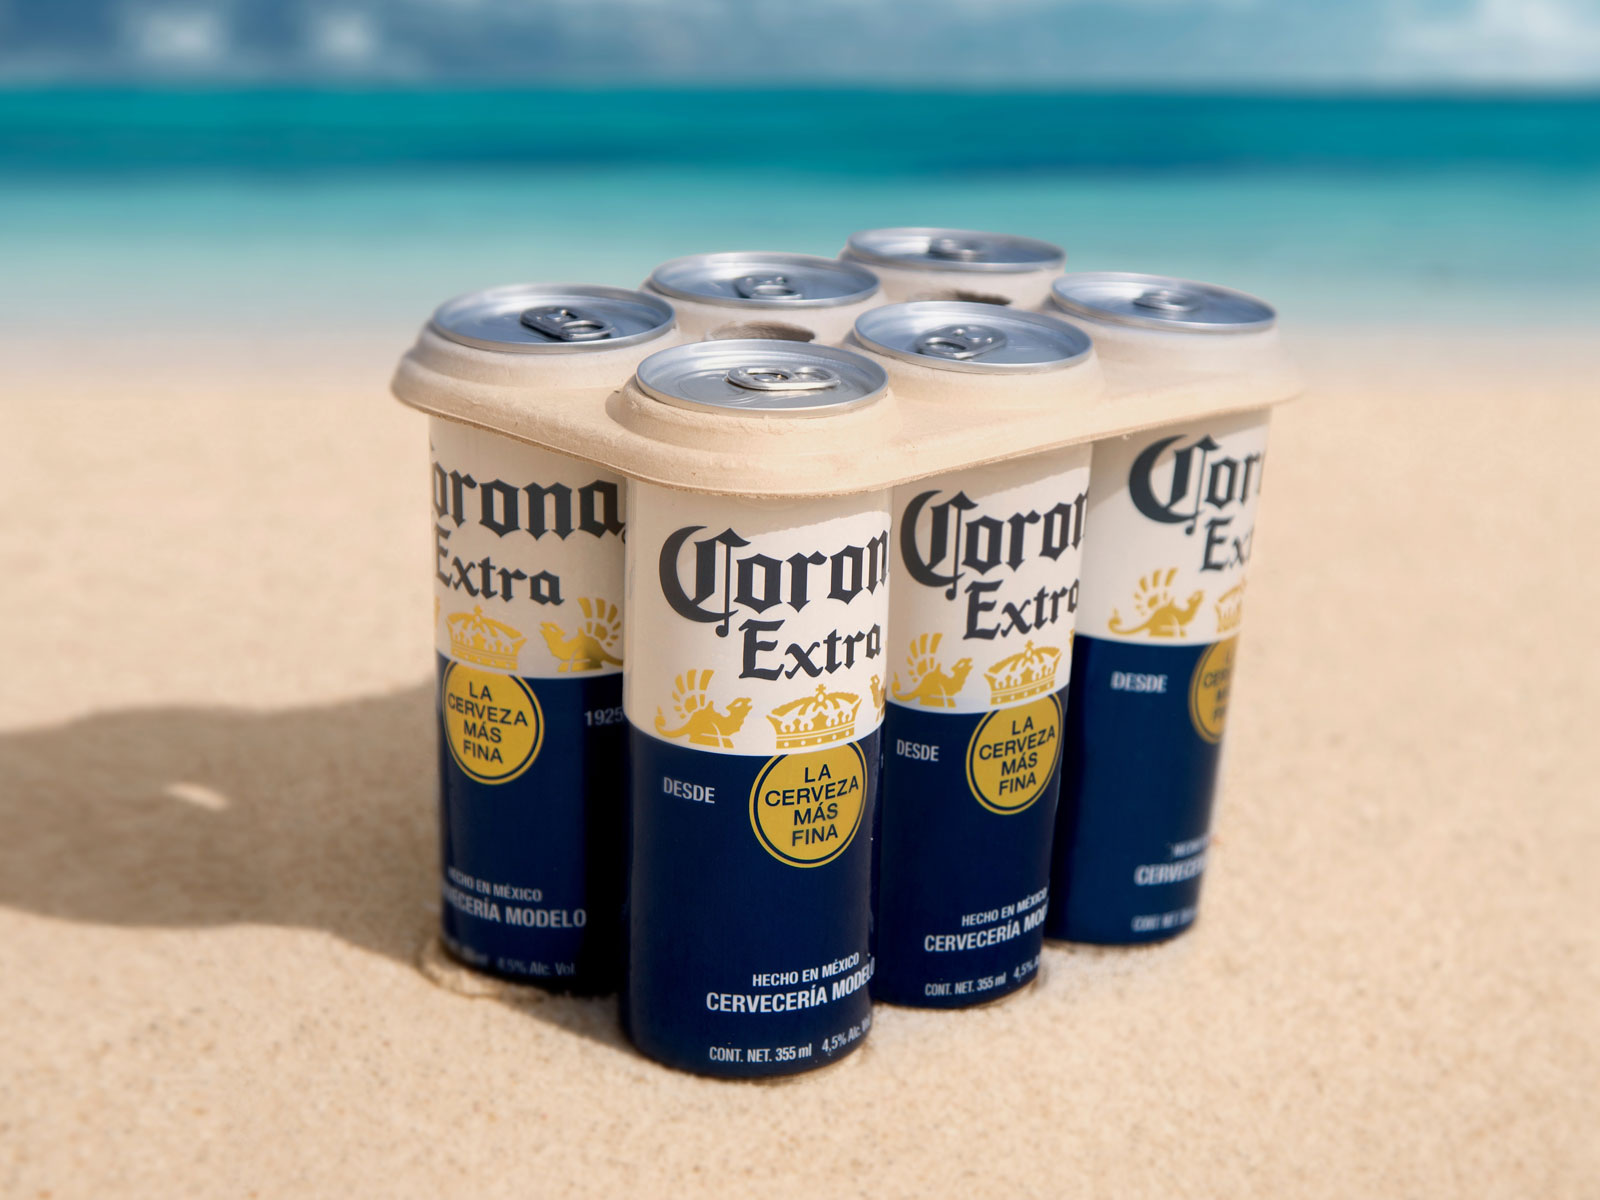 corona-plastic-free-six-pack-FT-BLOG1118.jpg